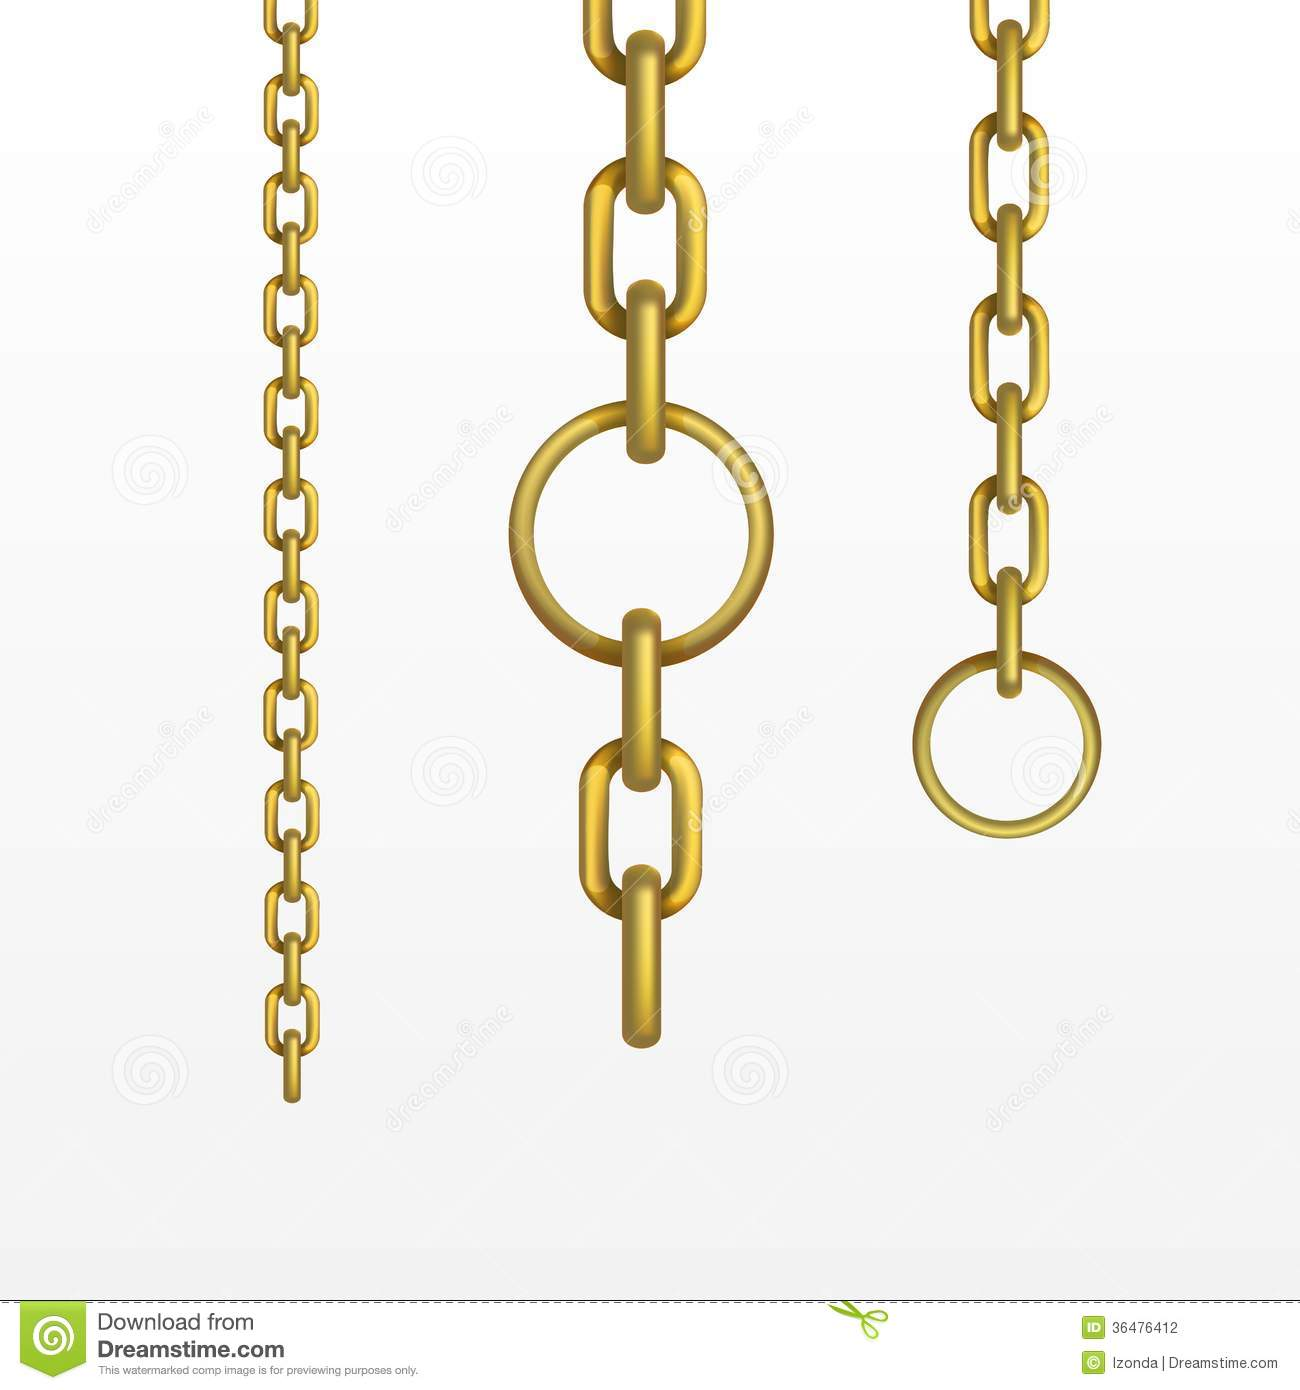 Vector Gold Chain Stock Vector Illustration Of Military